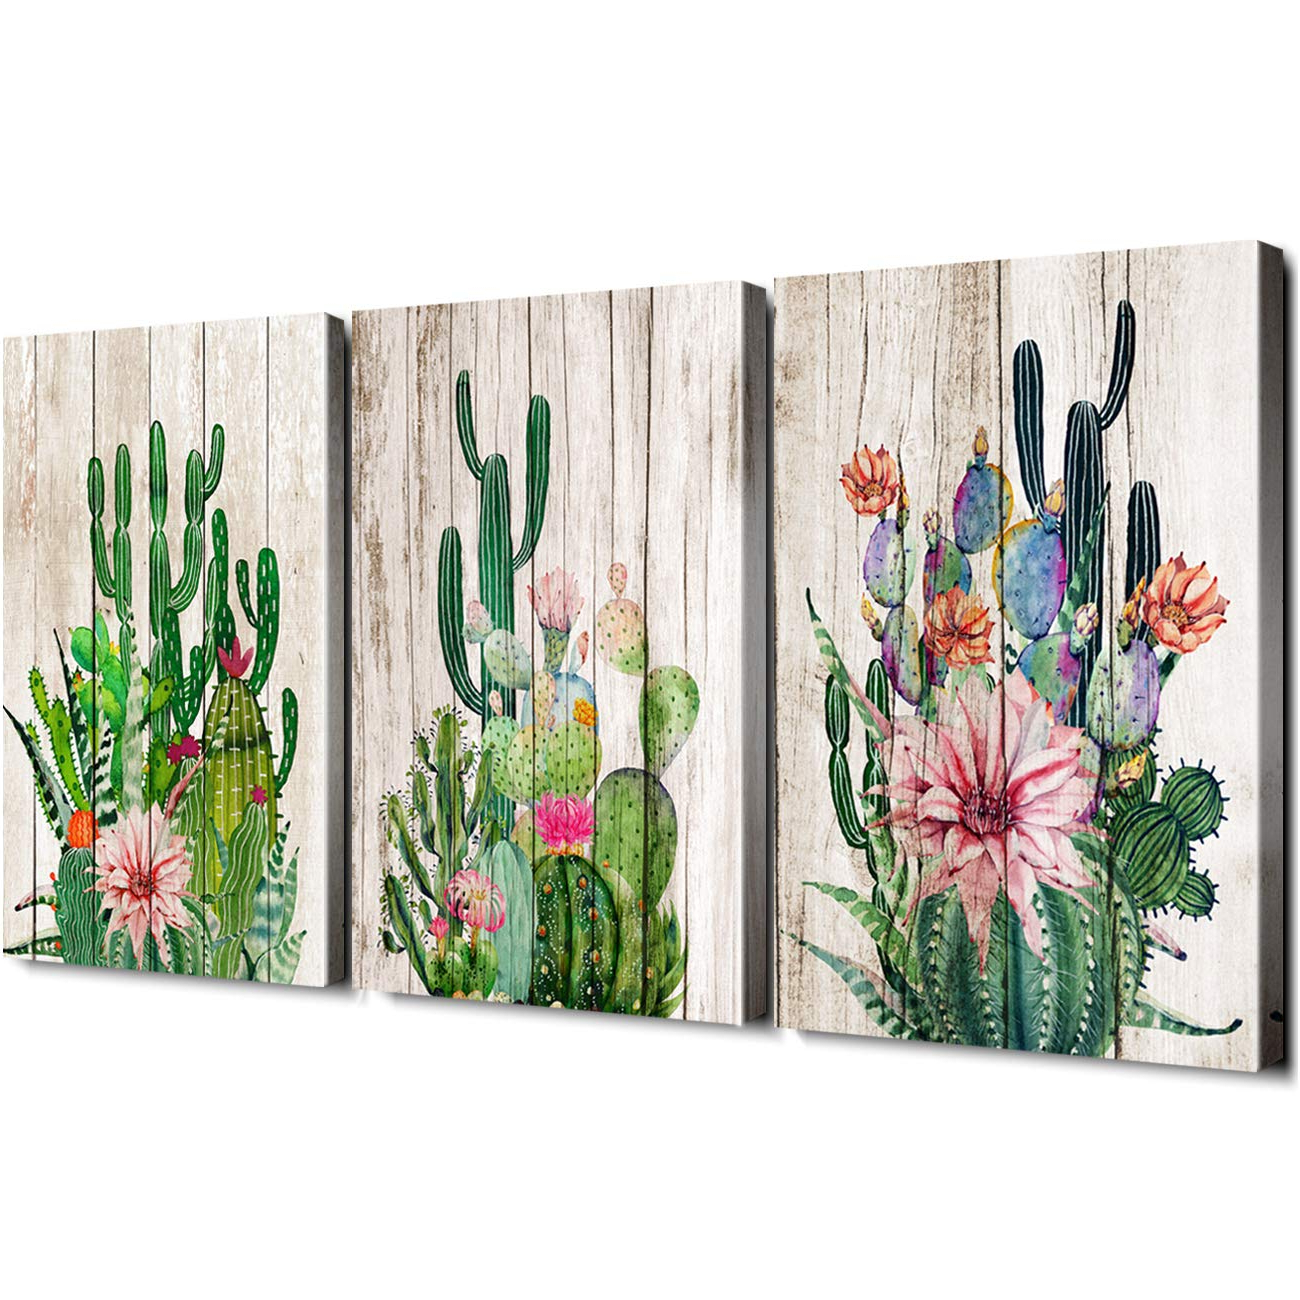 Amazon: Cactus Decor Bathroom Canvas Prints Wall Art Green For Fashionable 3 Piece Ceramic Flowers Wall Decor Sets (View 10 of 20)